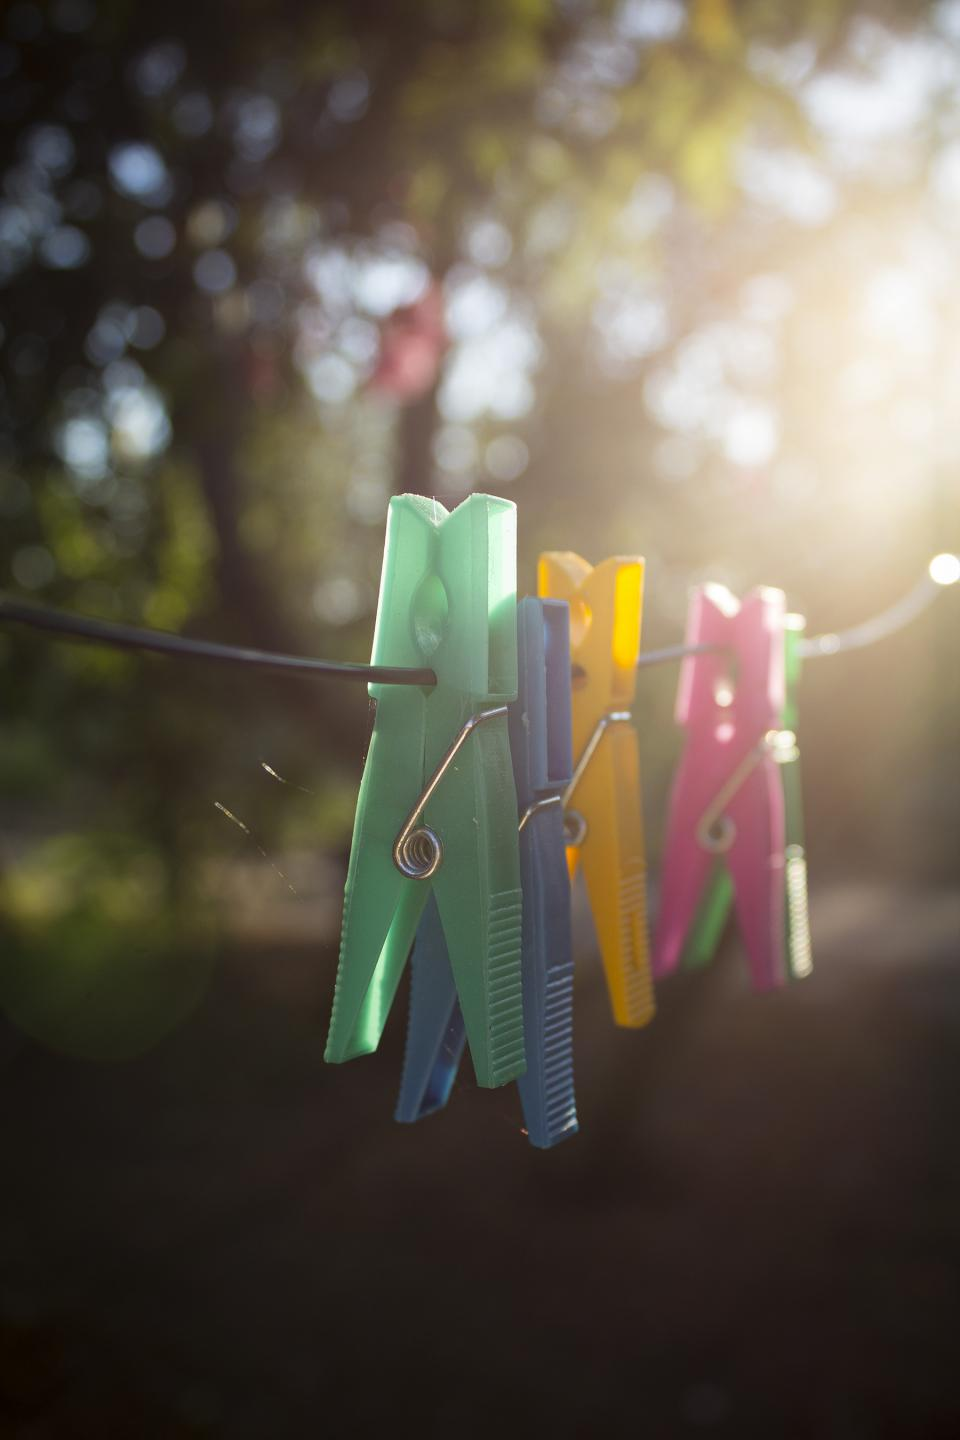 pin clothespin clip clothes colorful green blue blur wire morning sunlight summer